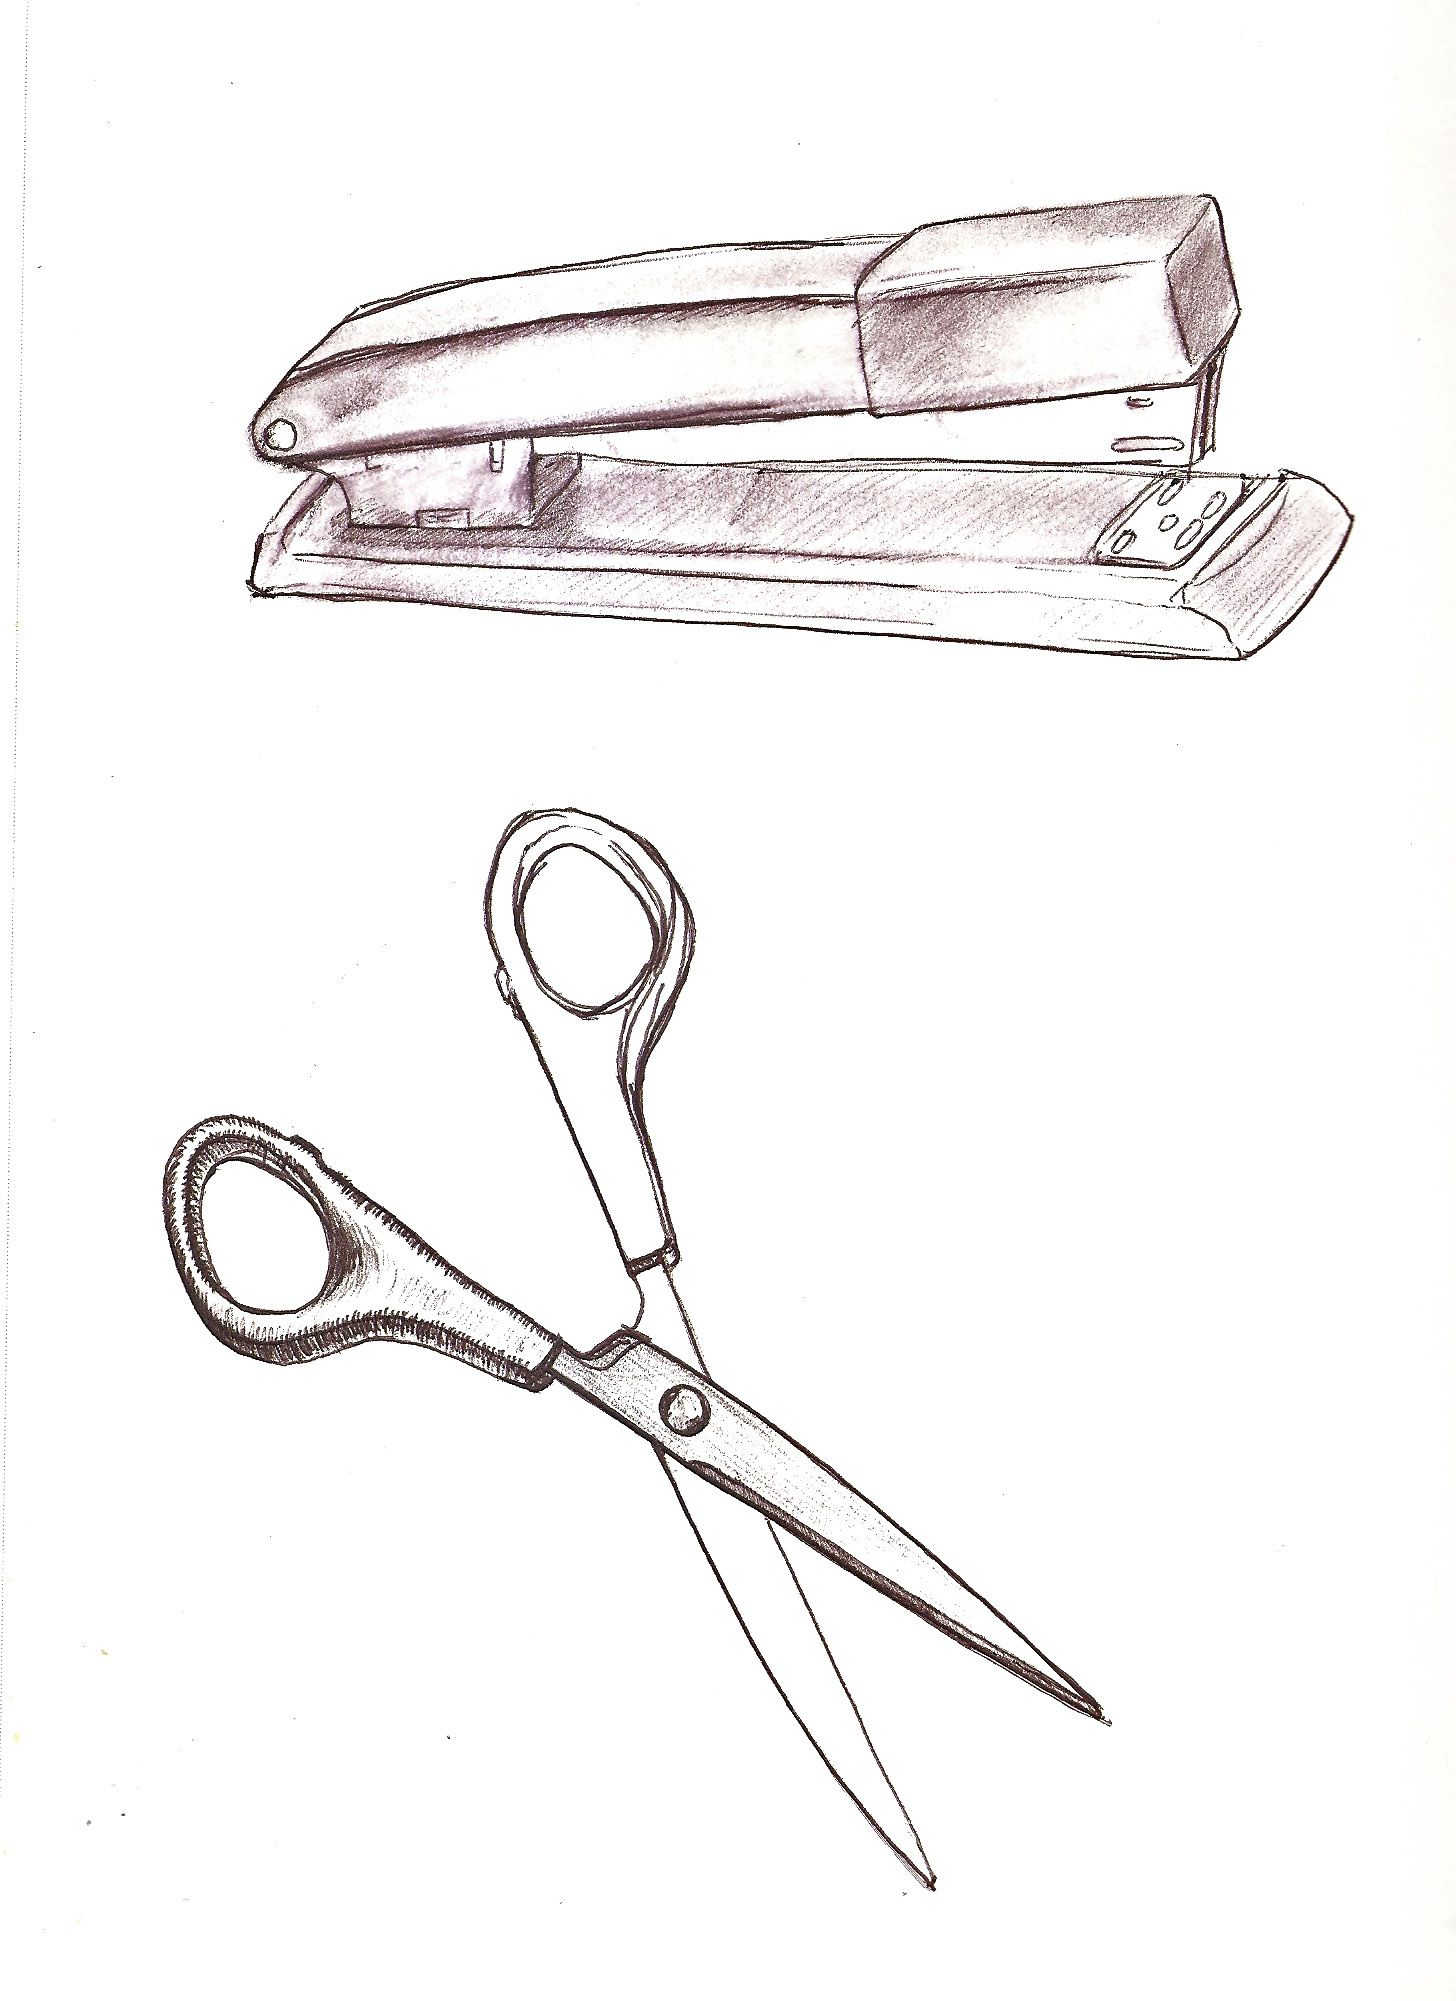 Stapler And Scissors Scissors Drawing Object Drawing Art Drawings Sketches Creative